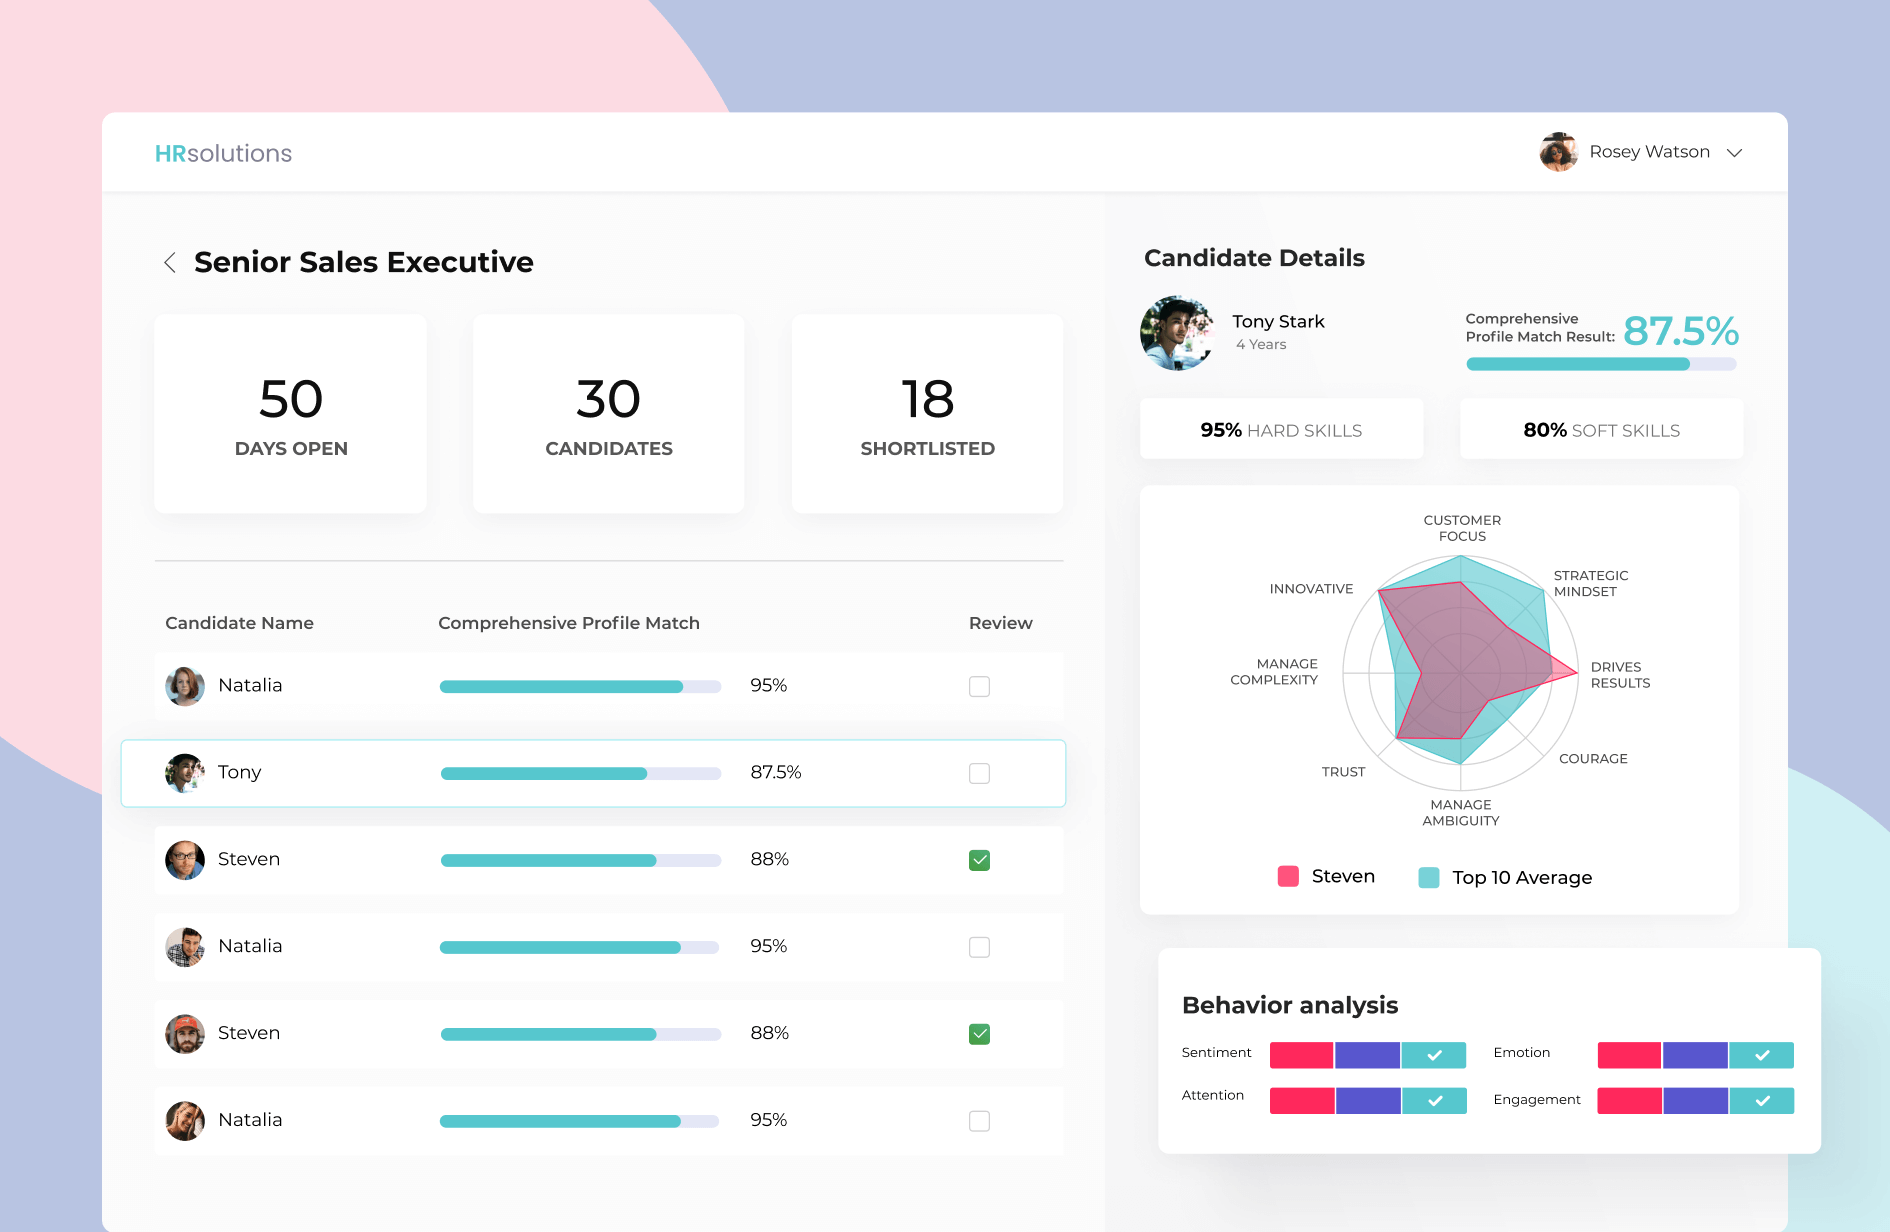 Dashboard screen for HRsolutions